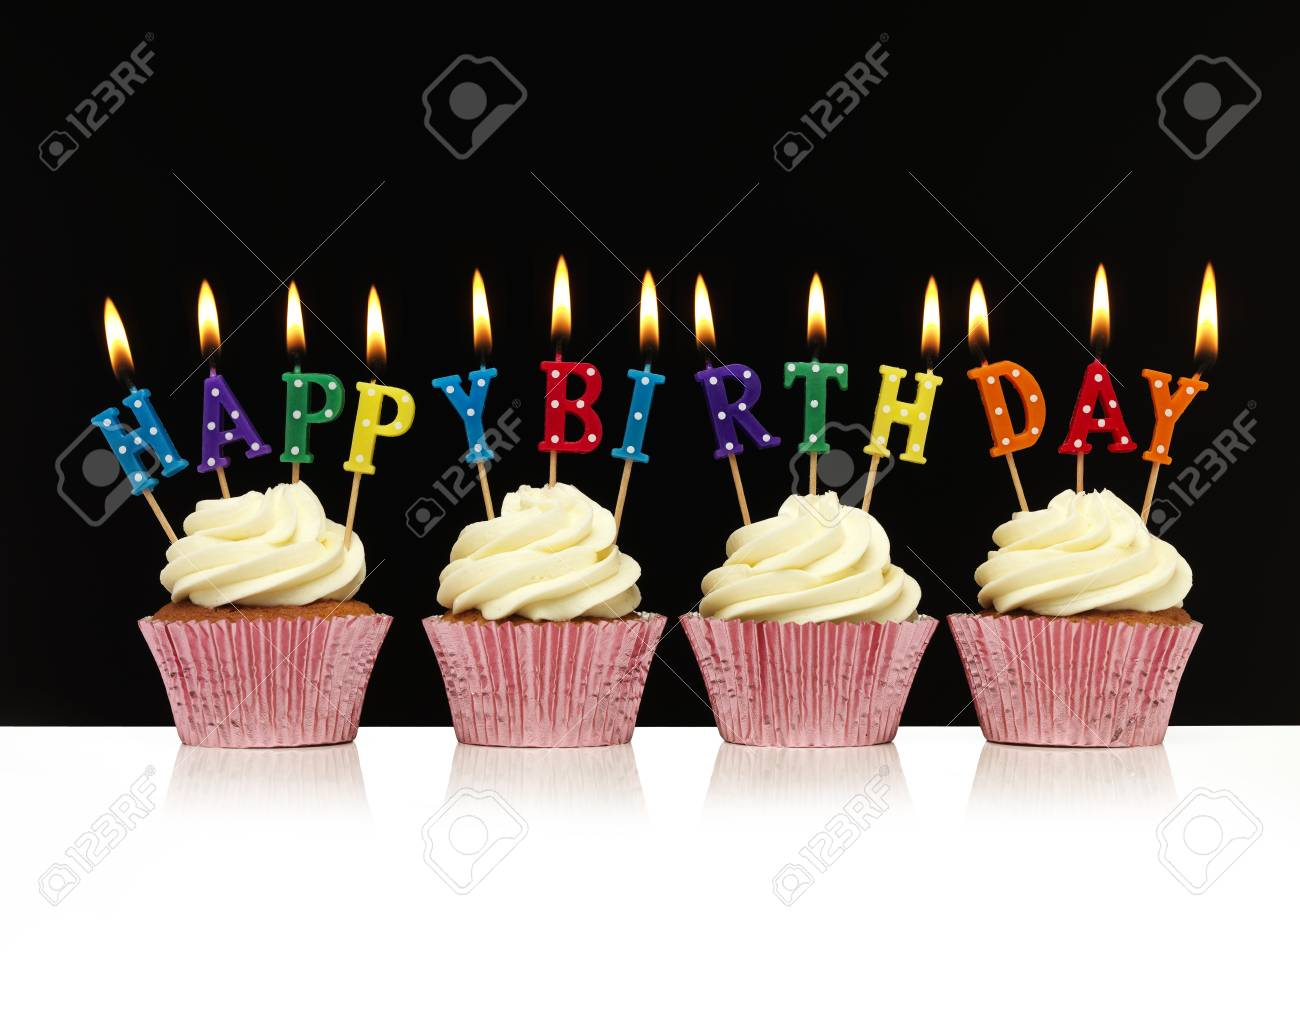 Cupcakes With Happy Birthday Candles Stock Photo